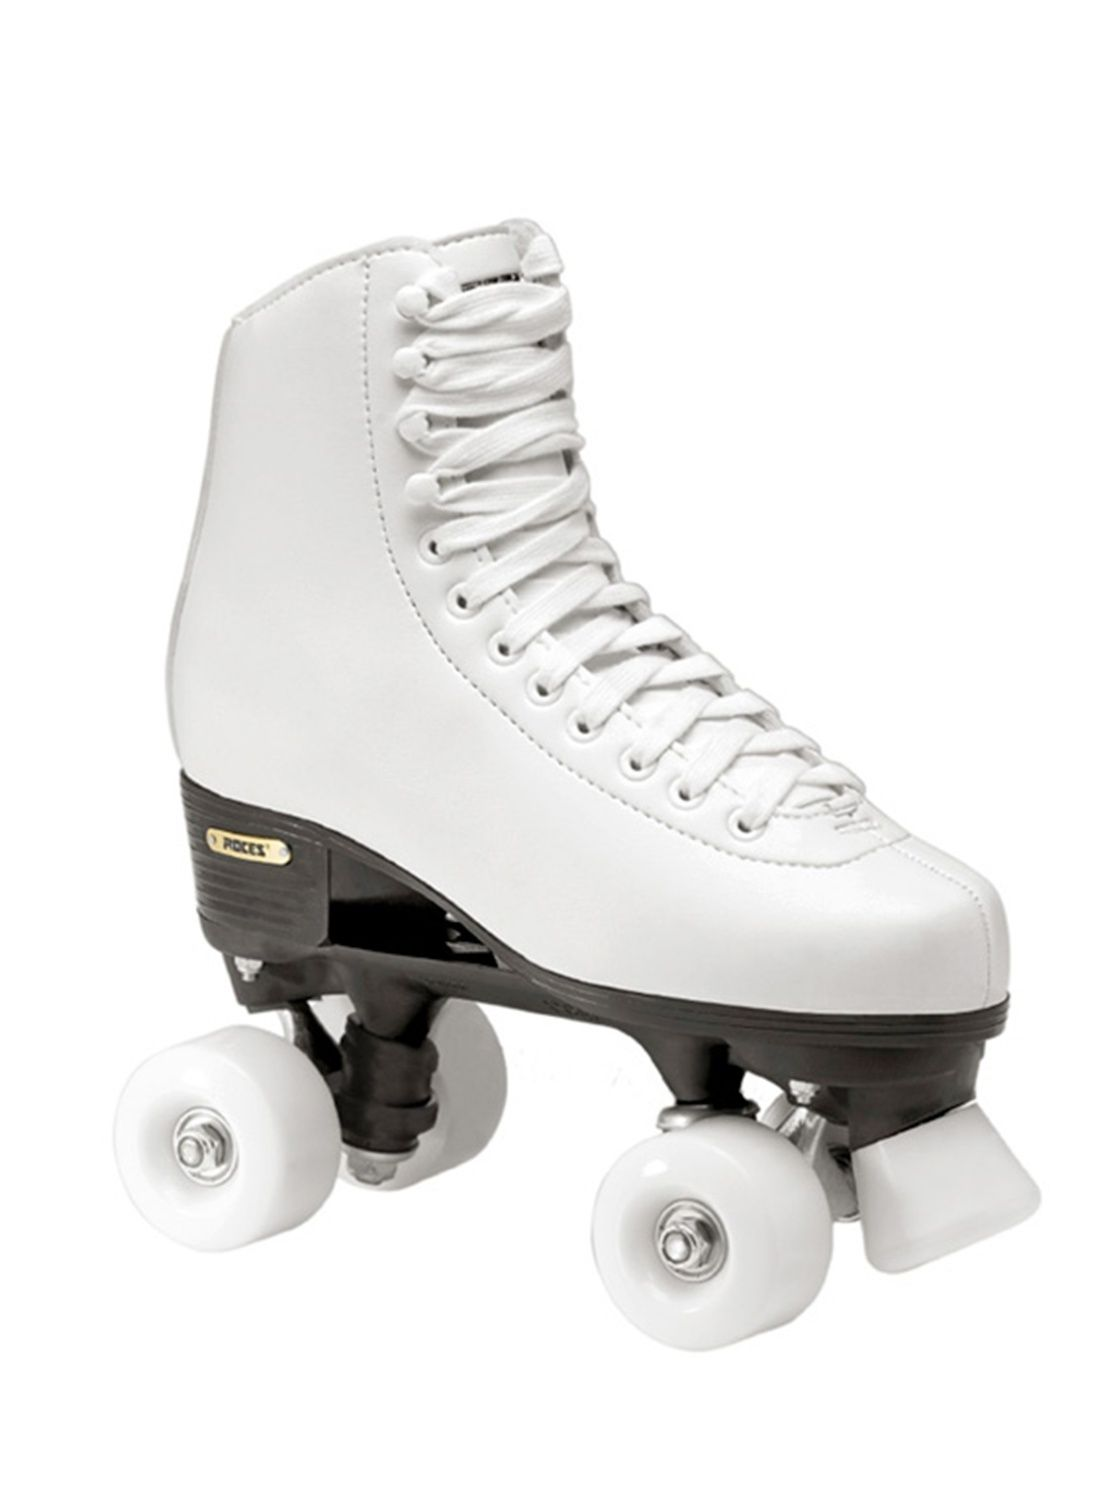 Roller skating shoes in chennai - Roces Pattini A Rotelle Rc 1 Bianco 40 Amazon It Sport E Tempo Roller Skatingroller